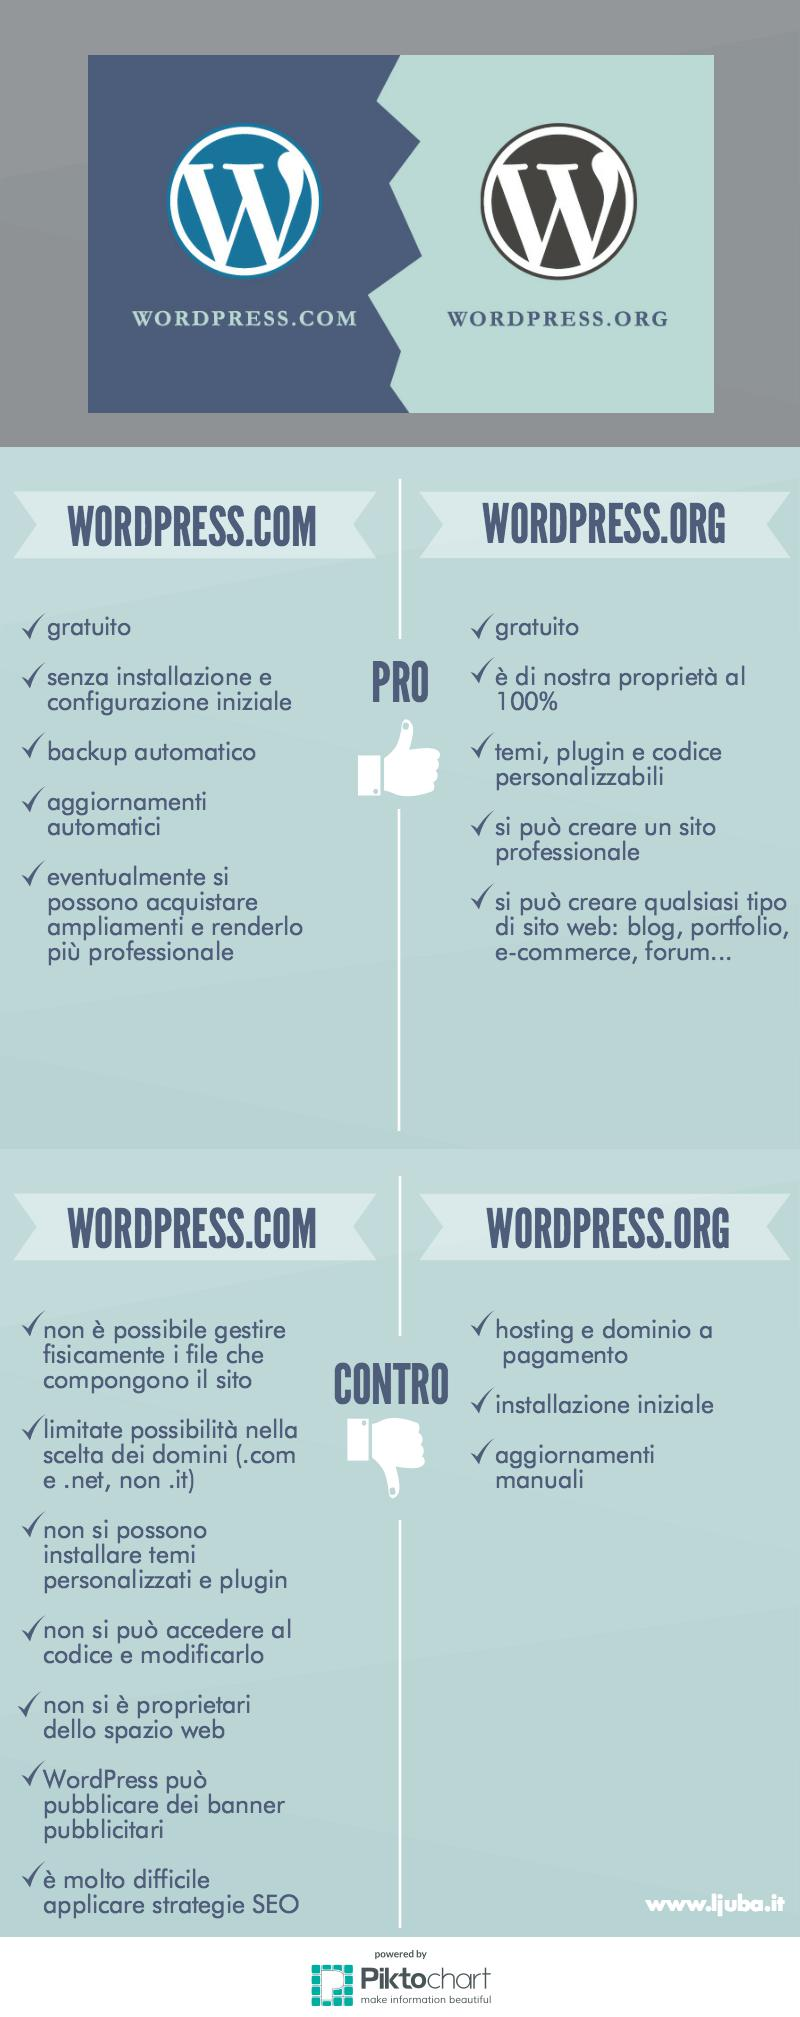 infografica wordpress.com e wordpress.org